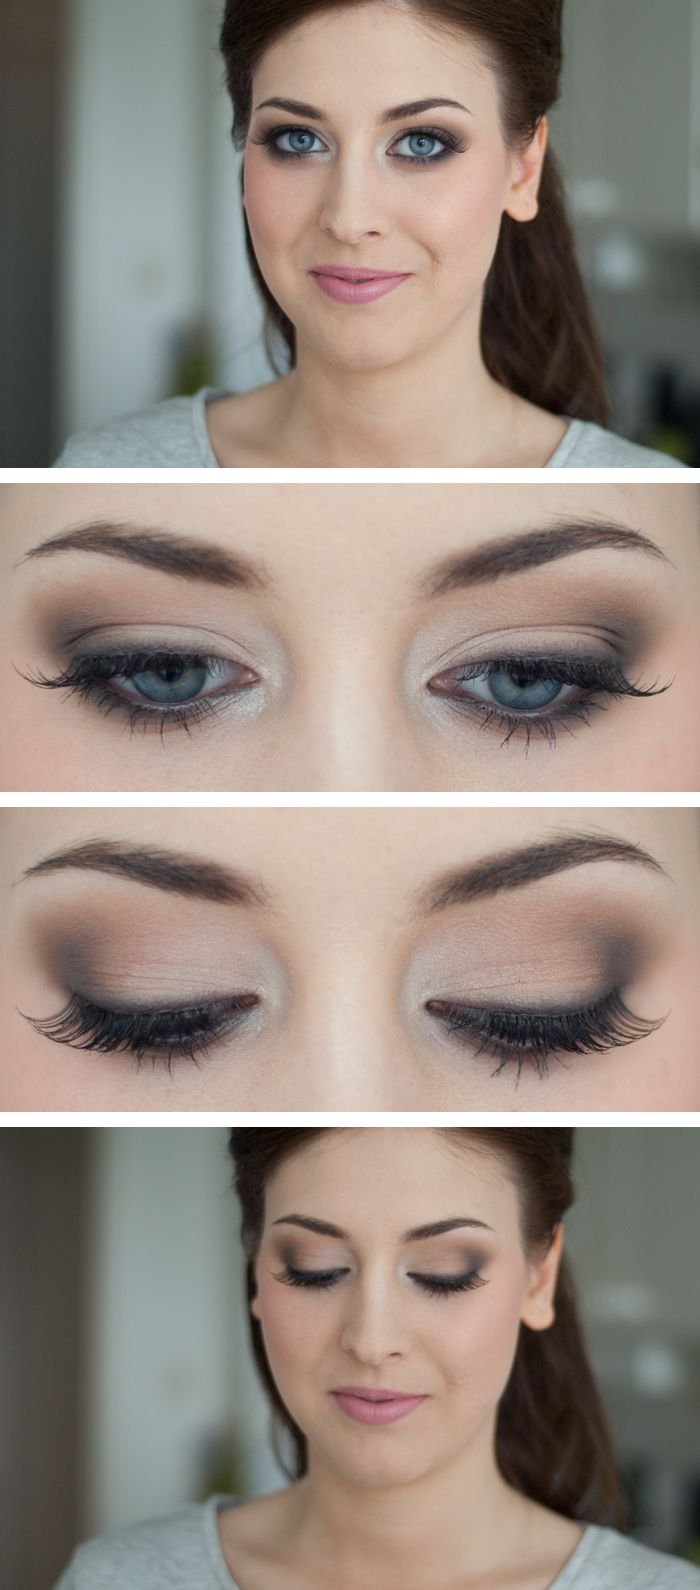 Just to show you a neutral example, the crease/liner colour could be changed for navy. Very classic